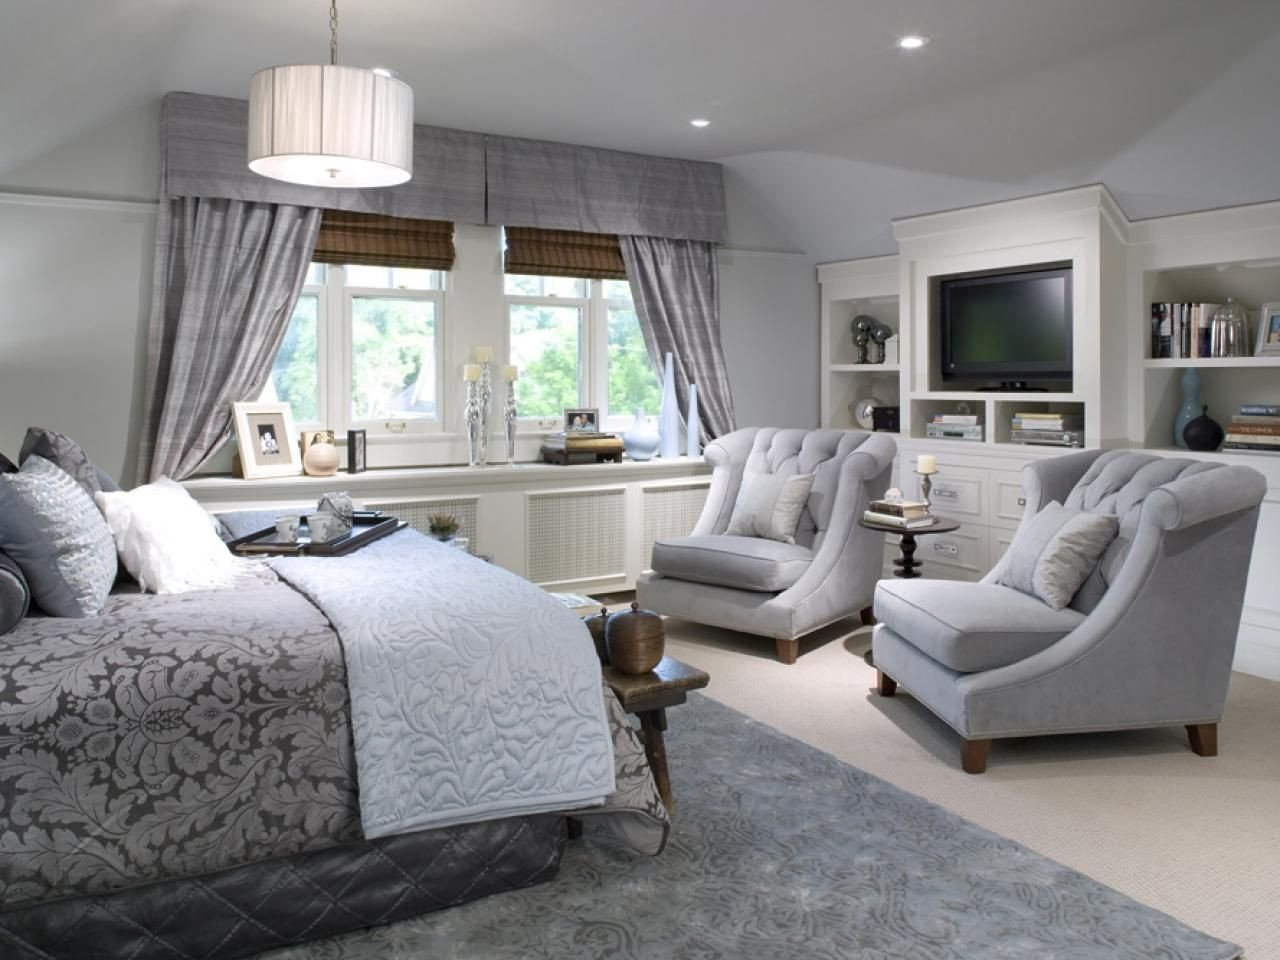 Bedroom Sitting area Ideas Luxury I Like This Layout Put the Tv Against the Large Wall and A